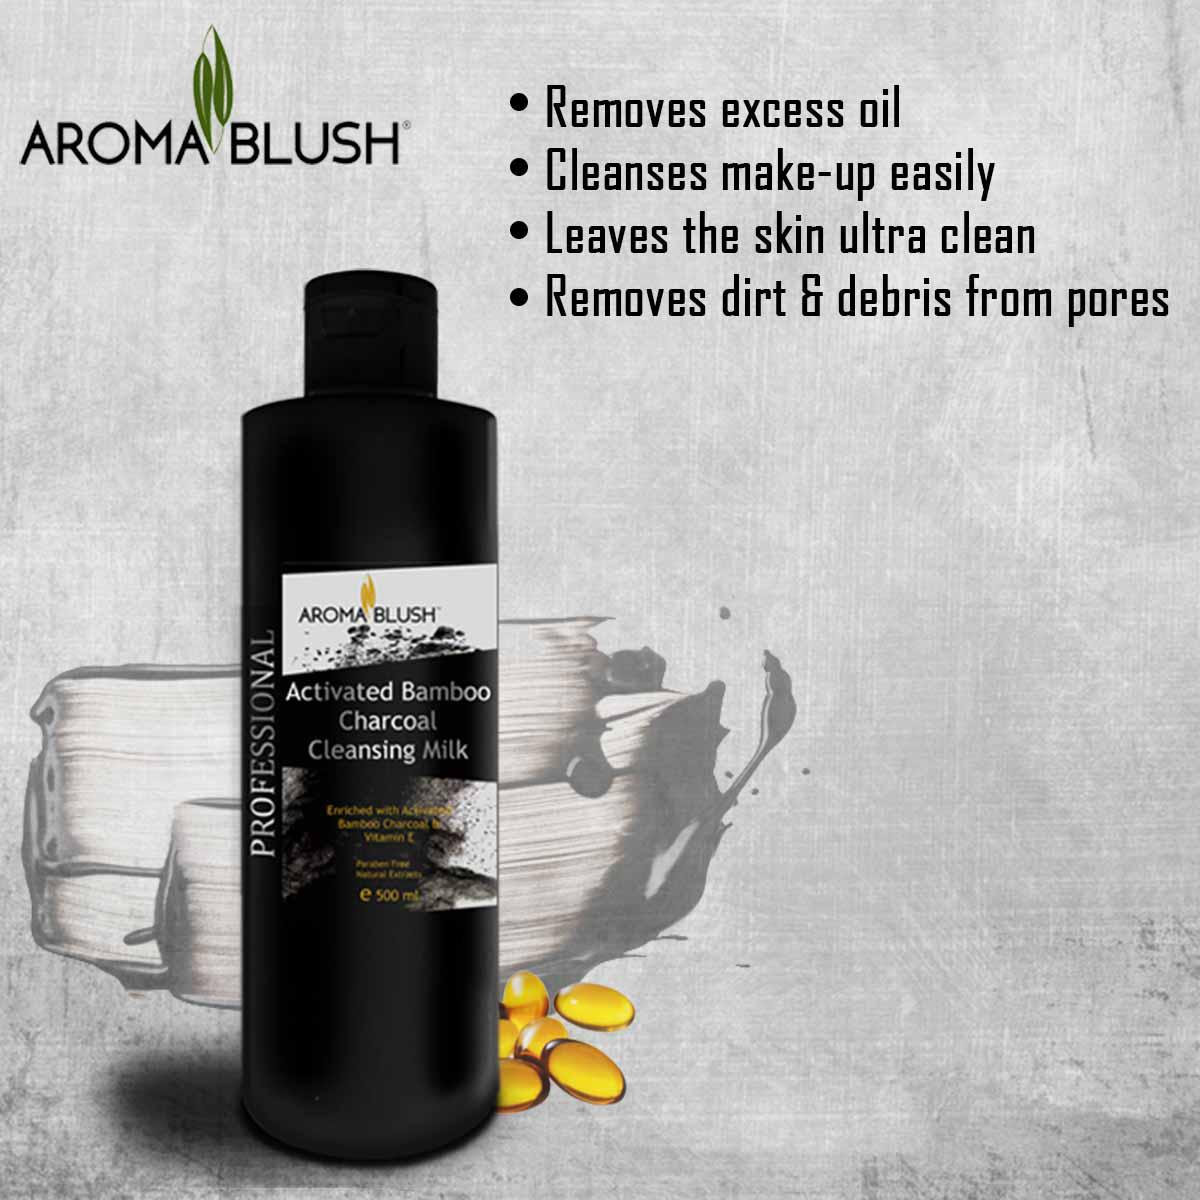 Aroma Blush - Activated Bamboo Charcoal Cleansing Milk - 500gm